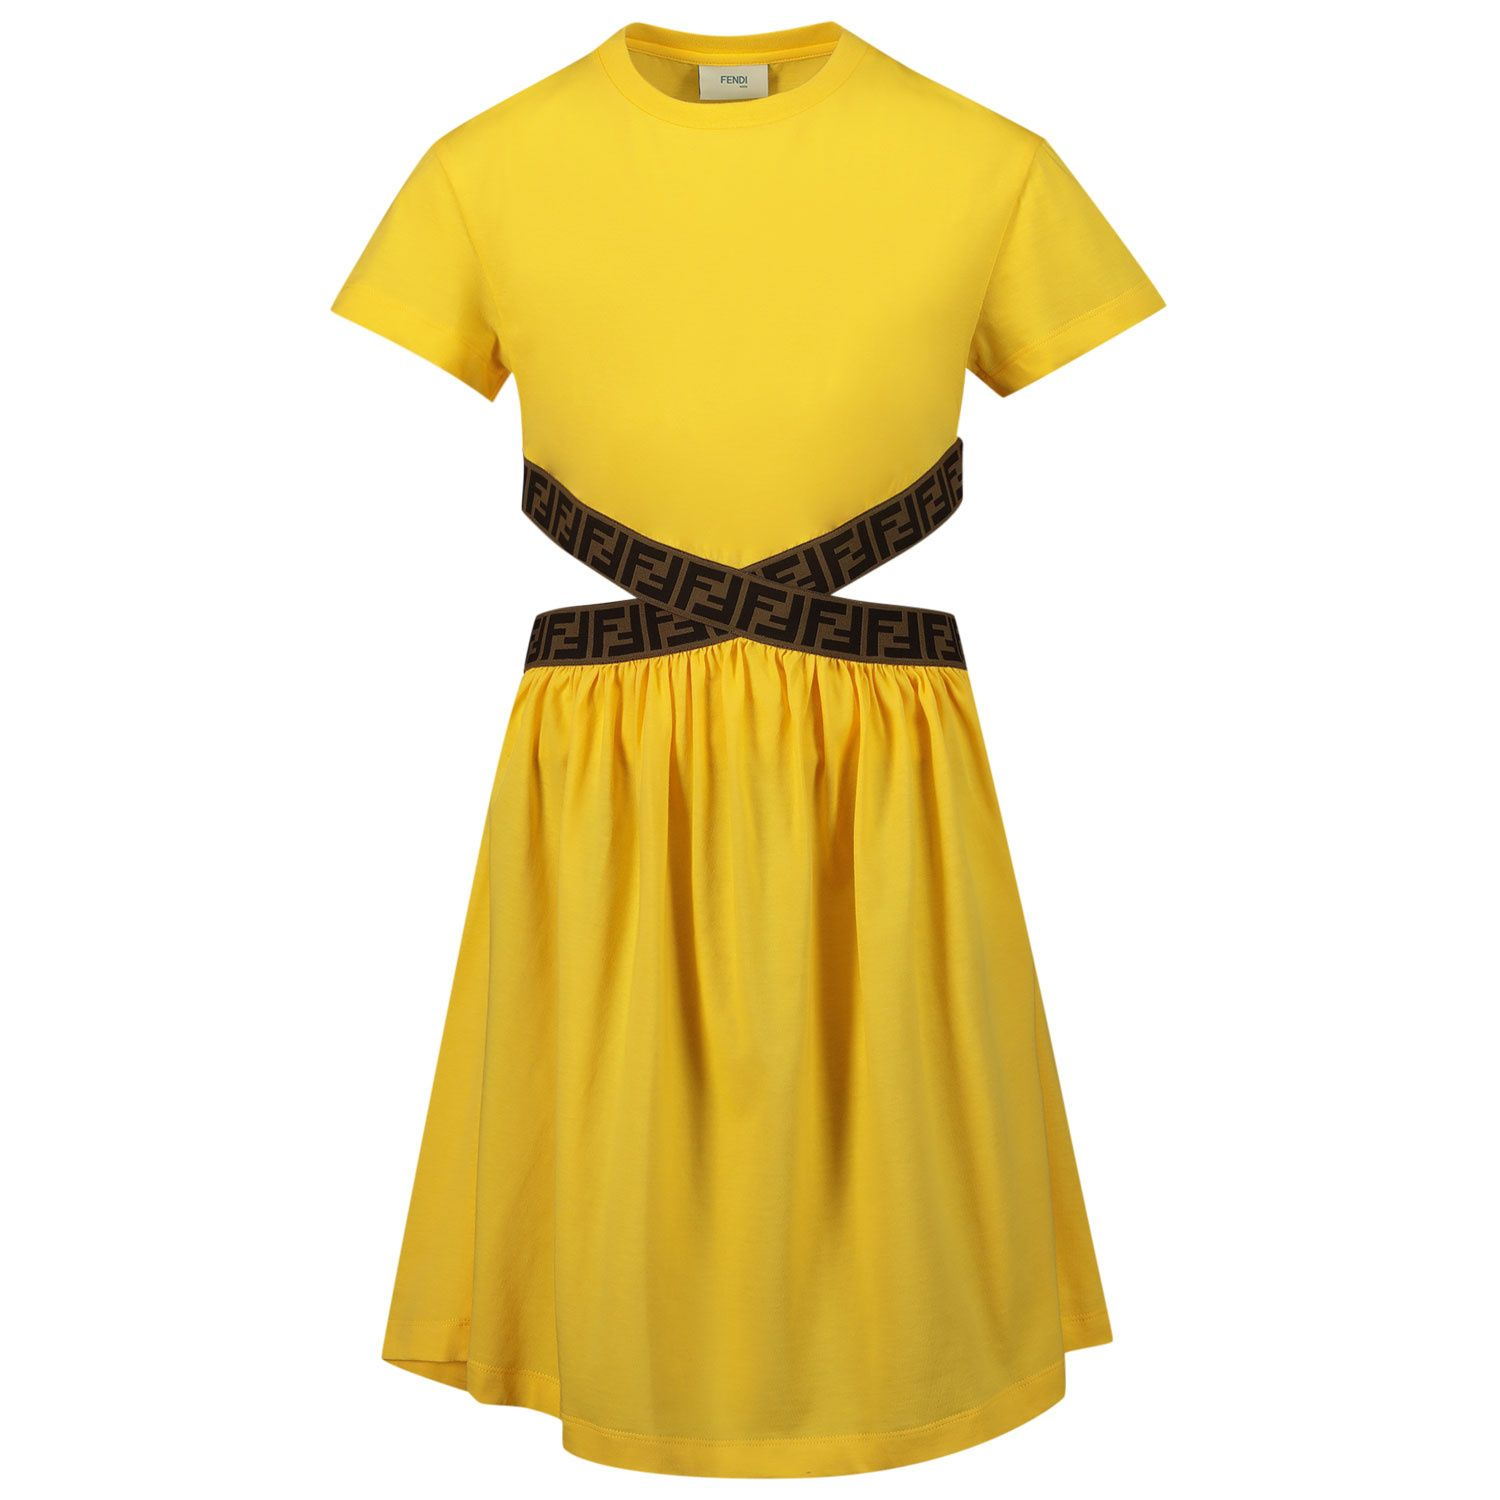 Picture of Fendi JFB443 7AJ kids dress yellow